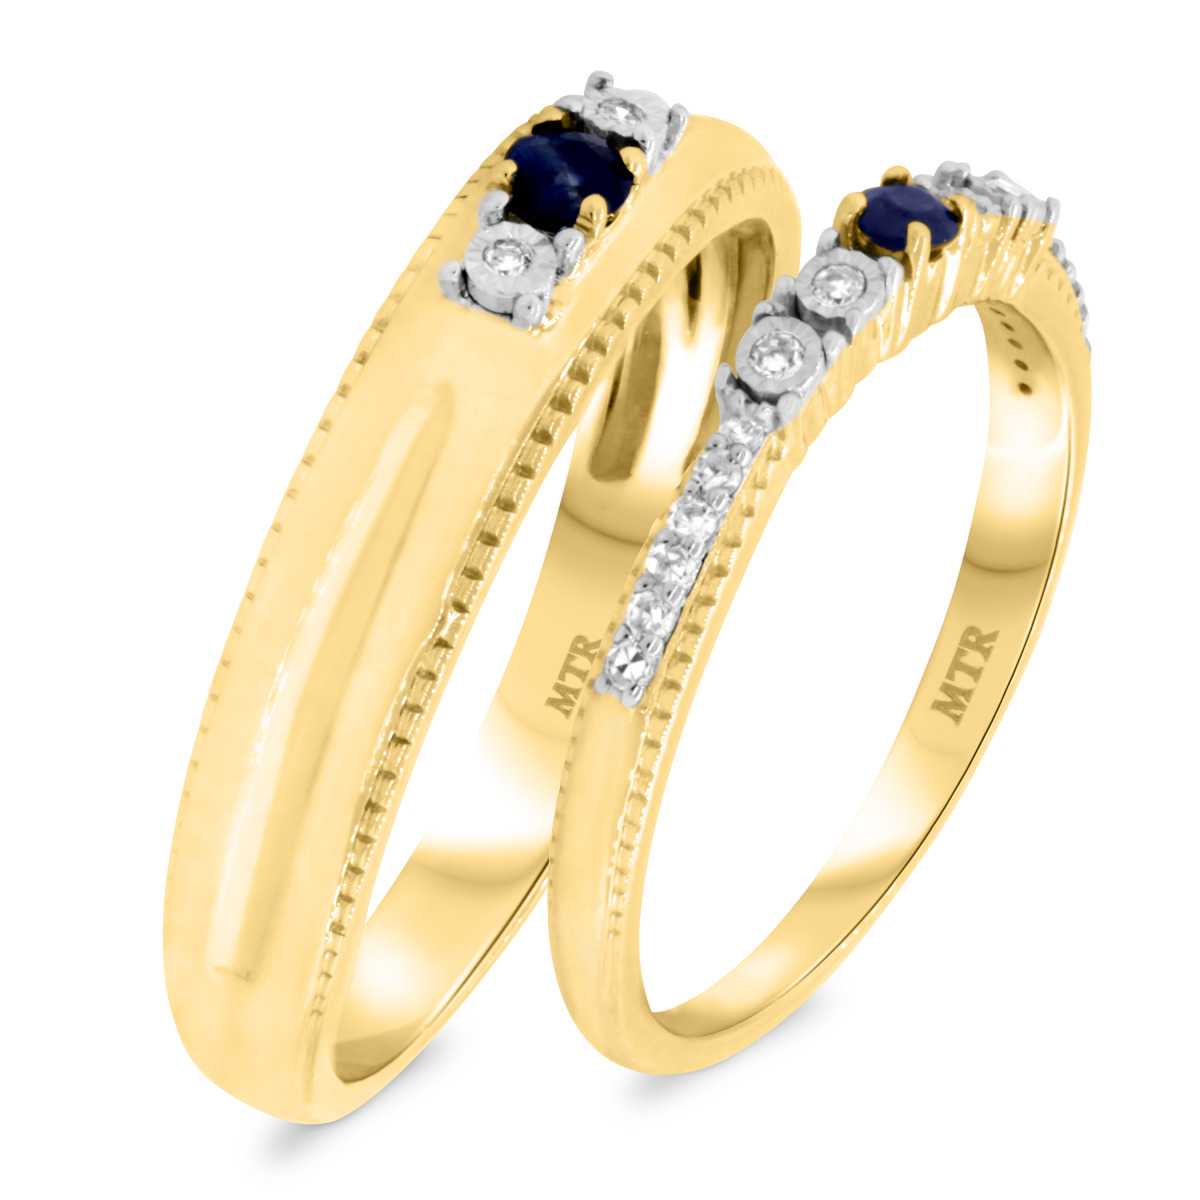 1/3 Carat T.W. Sapphire Matching Wedding Band Set 14K Yellow Gold